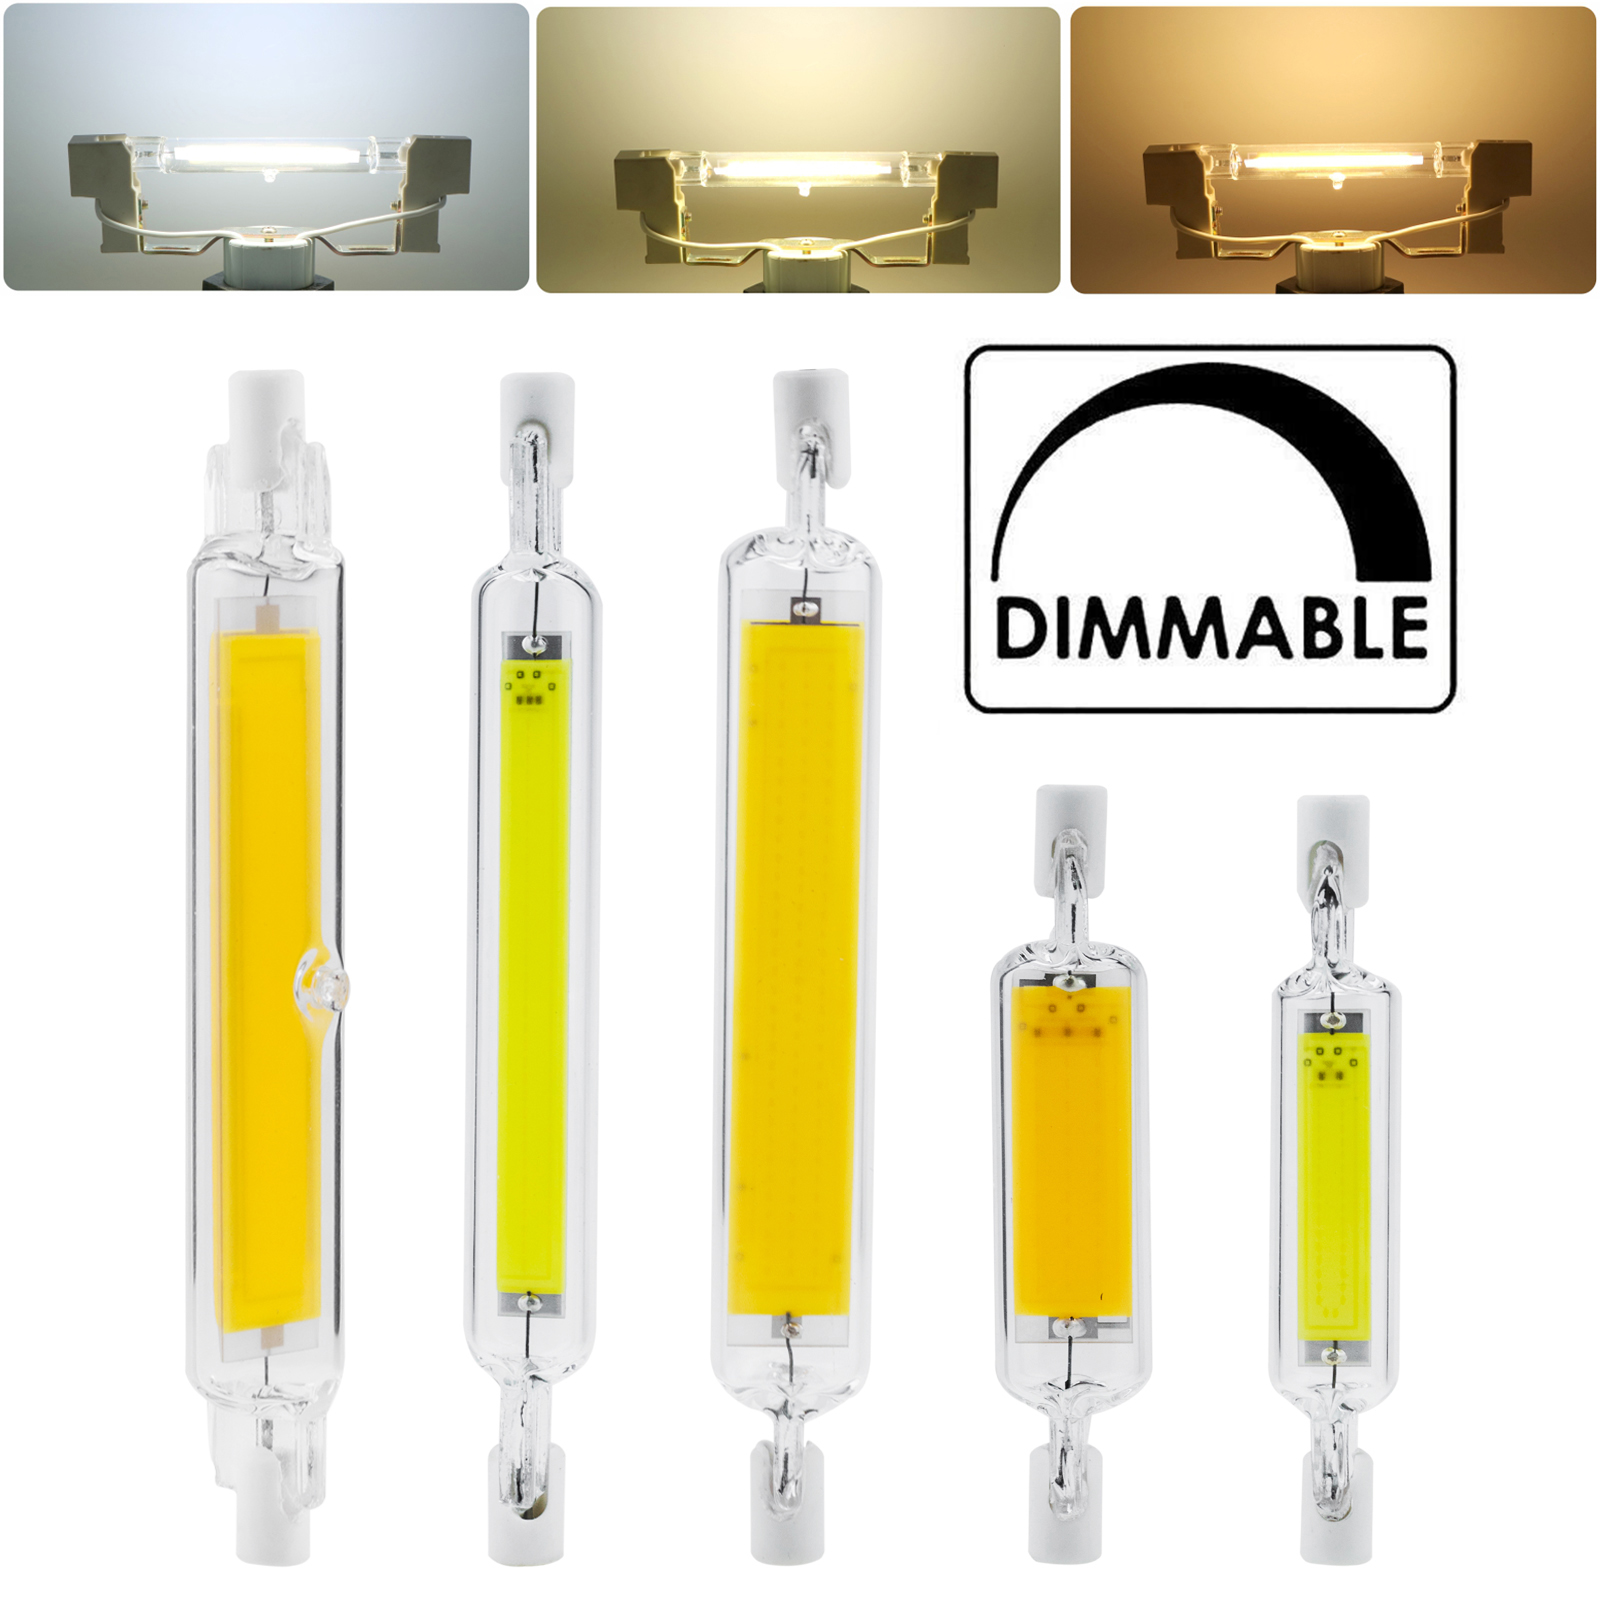 Dimmable R7s LED COB Light Bulbs 78mm 118mm 5W 10W 20W 110V 220V Floodlight Worklight J Type Double Ended White Lamp Glass Tube